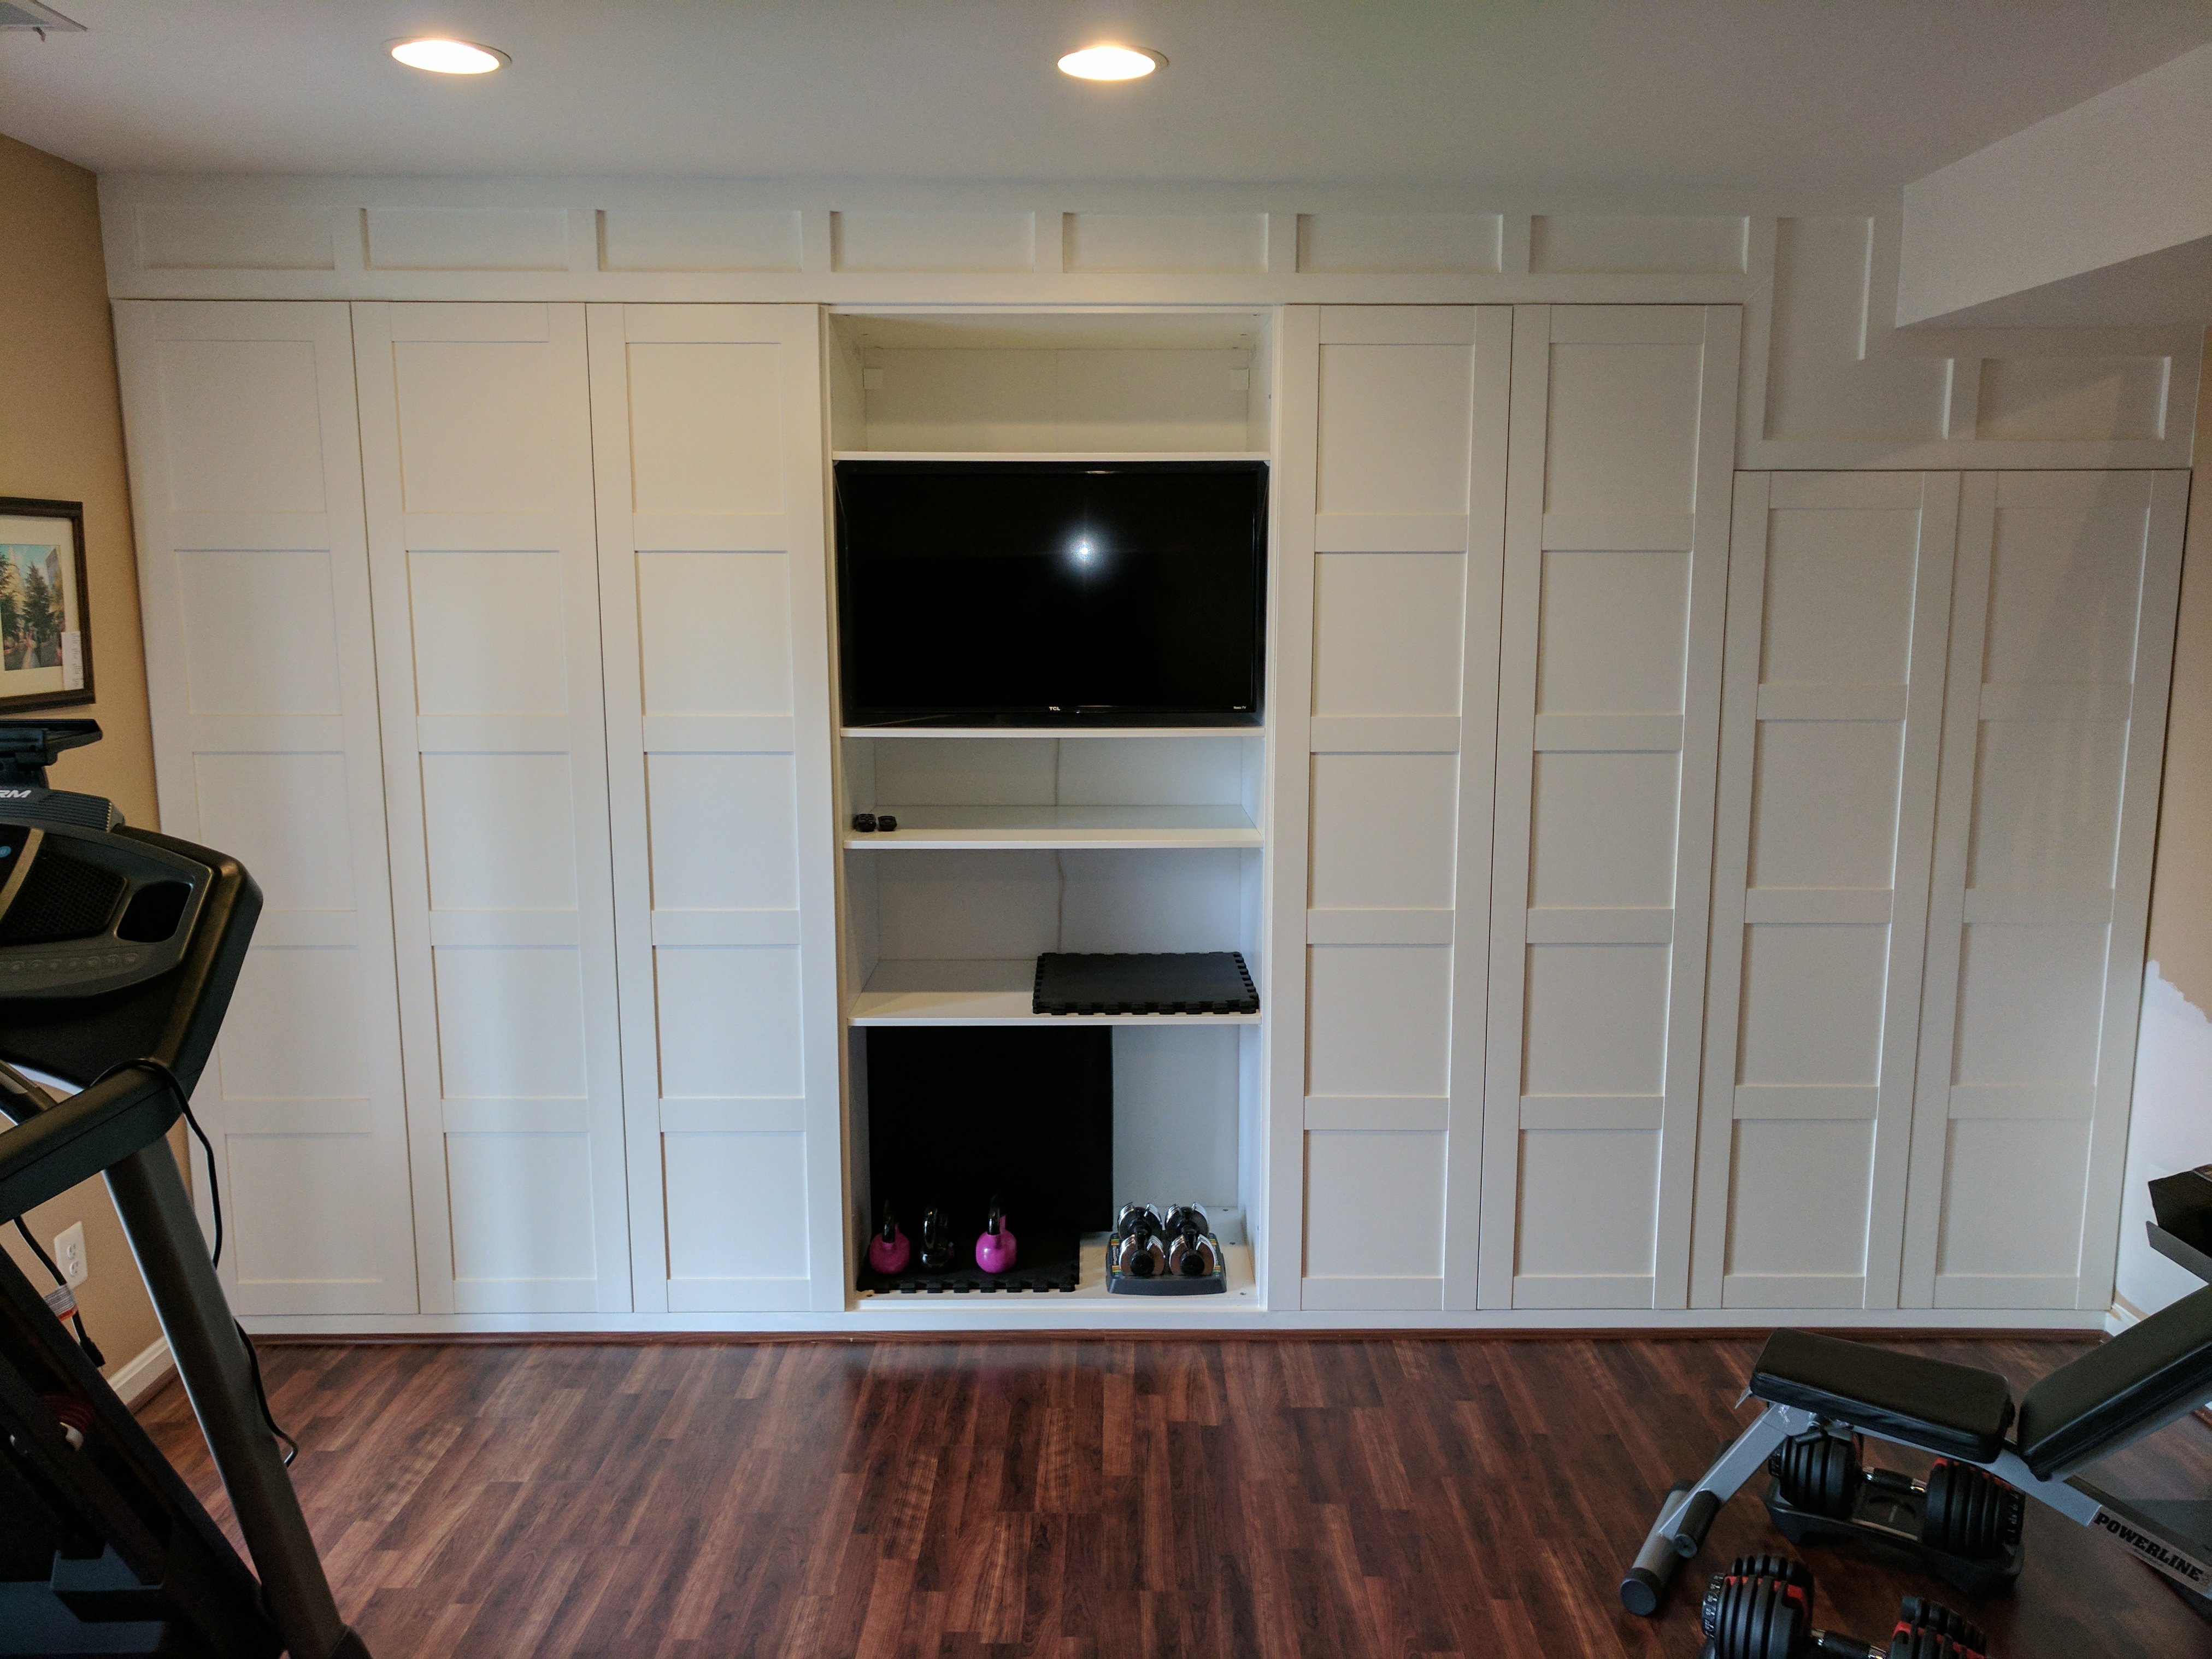 Ikea hack for wall to wall cabinet - Curious Roy